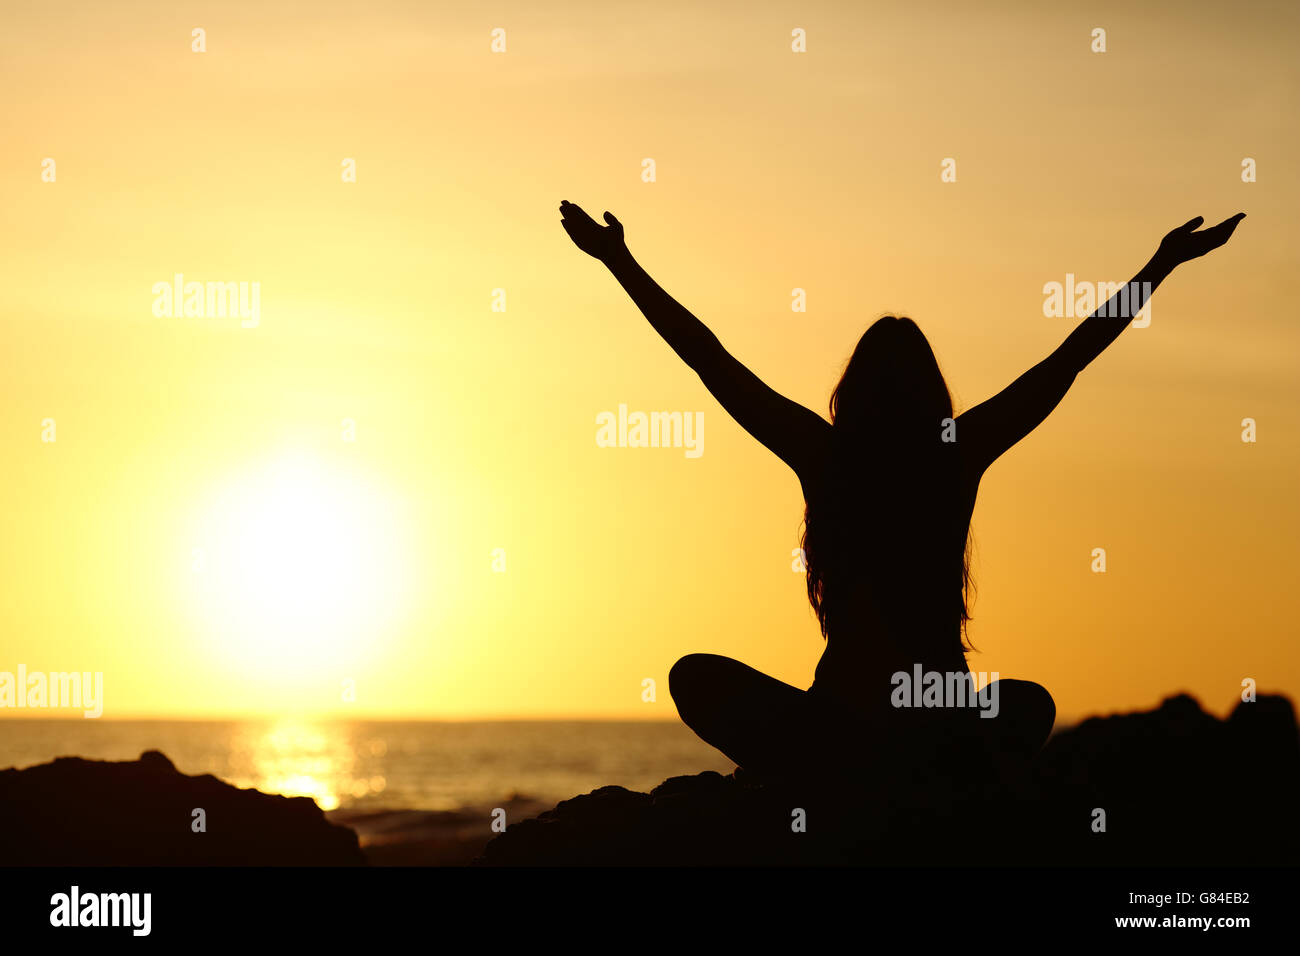 Back view portrait silhouette of a happy woman raising arms in a new day looking at warm sun at sunrise - Stock Image